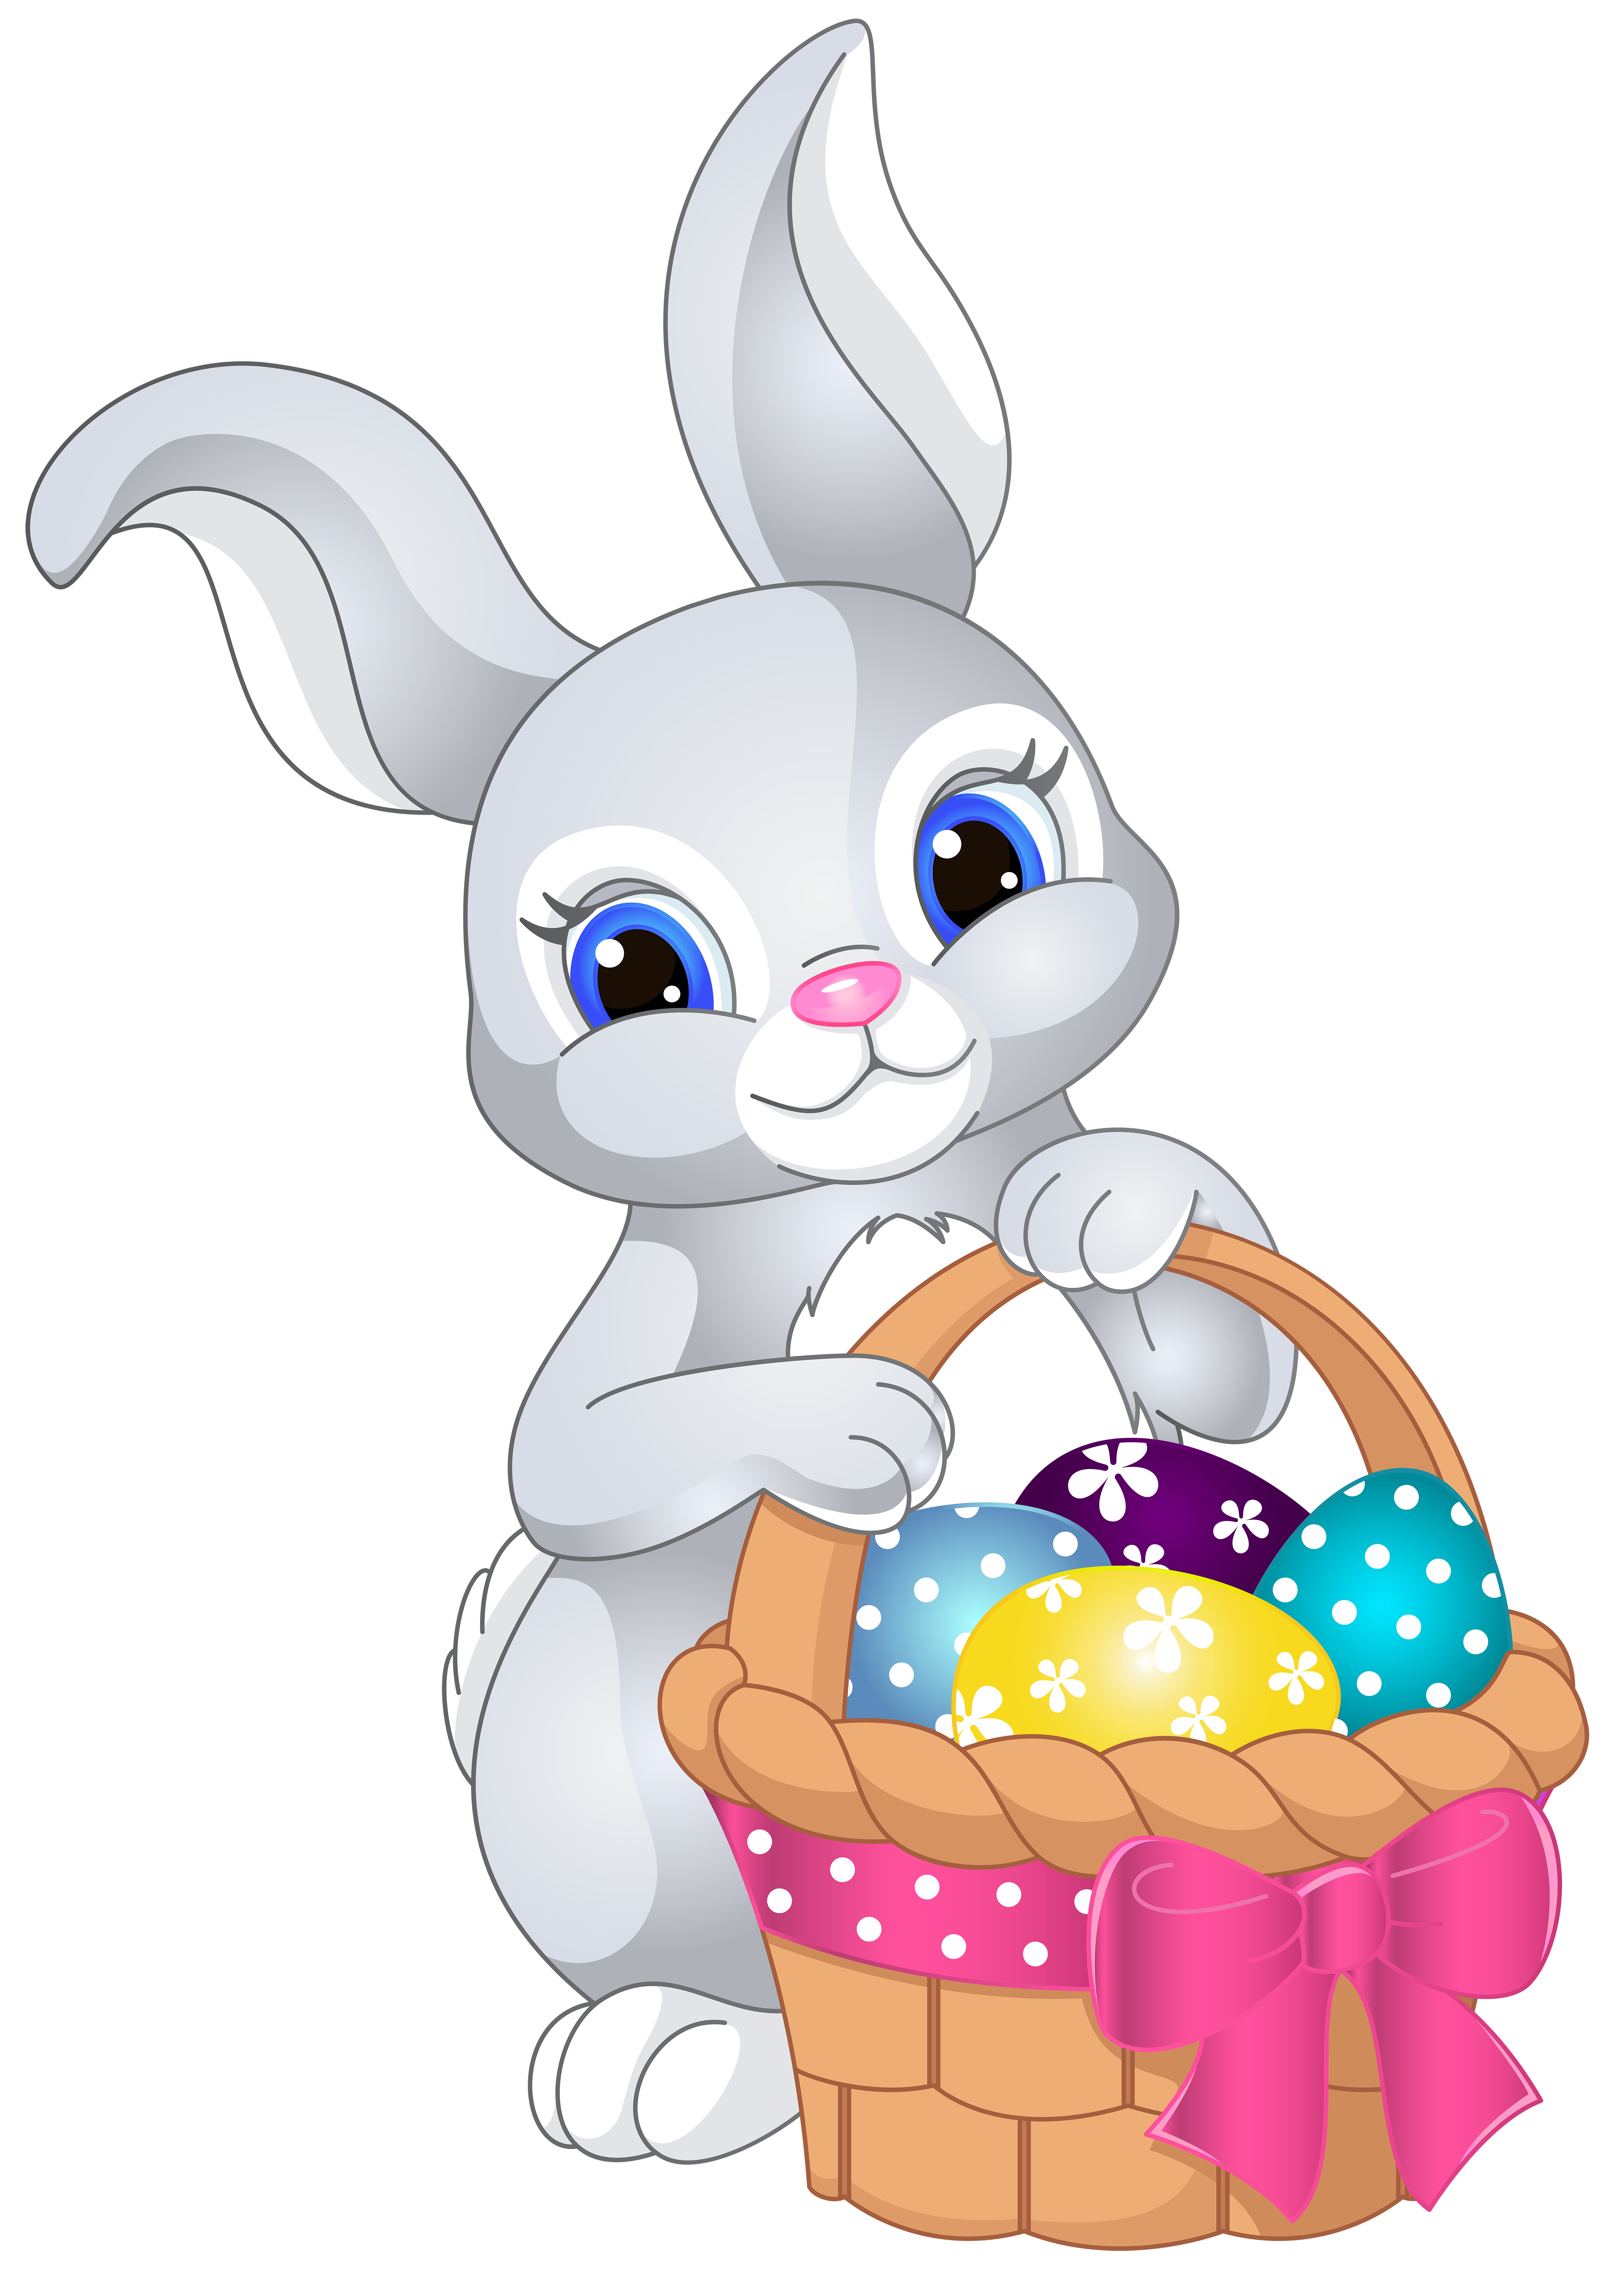 Rabbit clipart easter rabbit 10 pinterest rabbit rabbit clipart easter rabbit 10 voltagebd